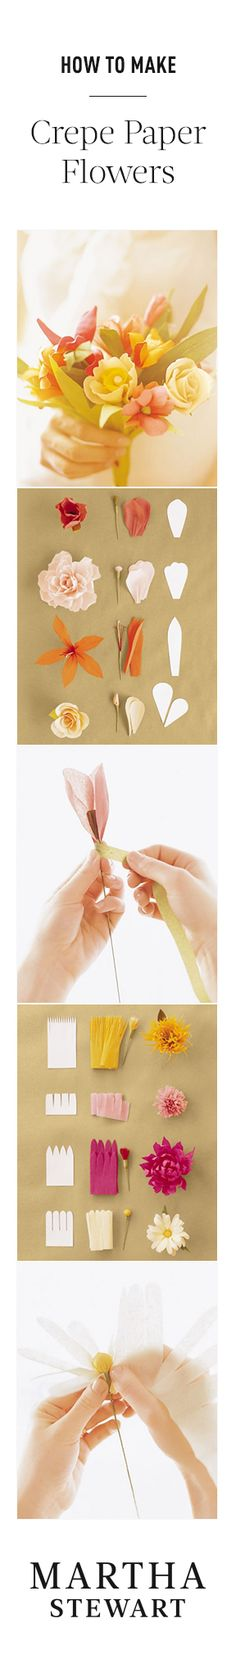 DIY : How to make crepe-paper flowers.now I just need the patience to do this.maybe a flower making party! Handmade Flowers, Diy Flowers, Fabric Flowers, Book Flowers, Real Flowers, Diy Paper, Paper Art, Paper Crafts, Diy Crafts